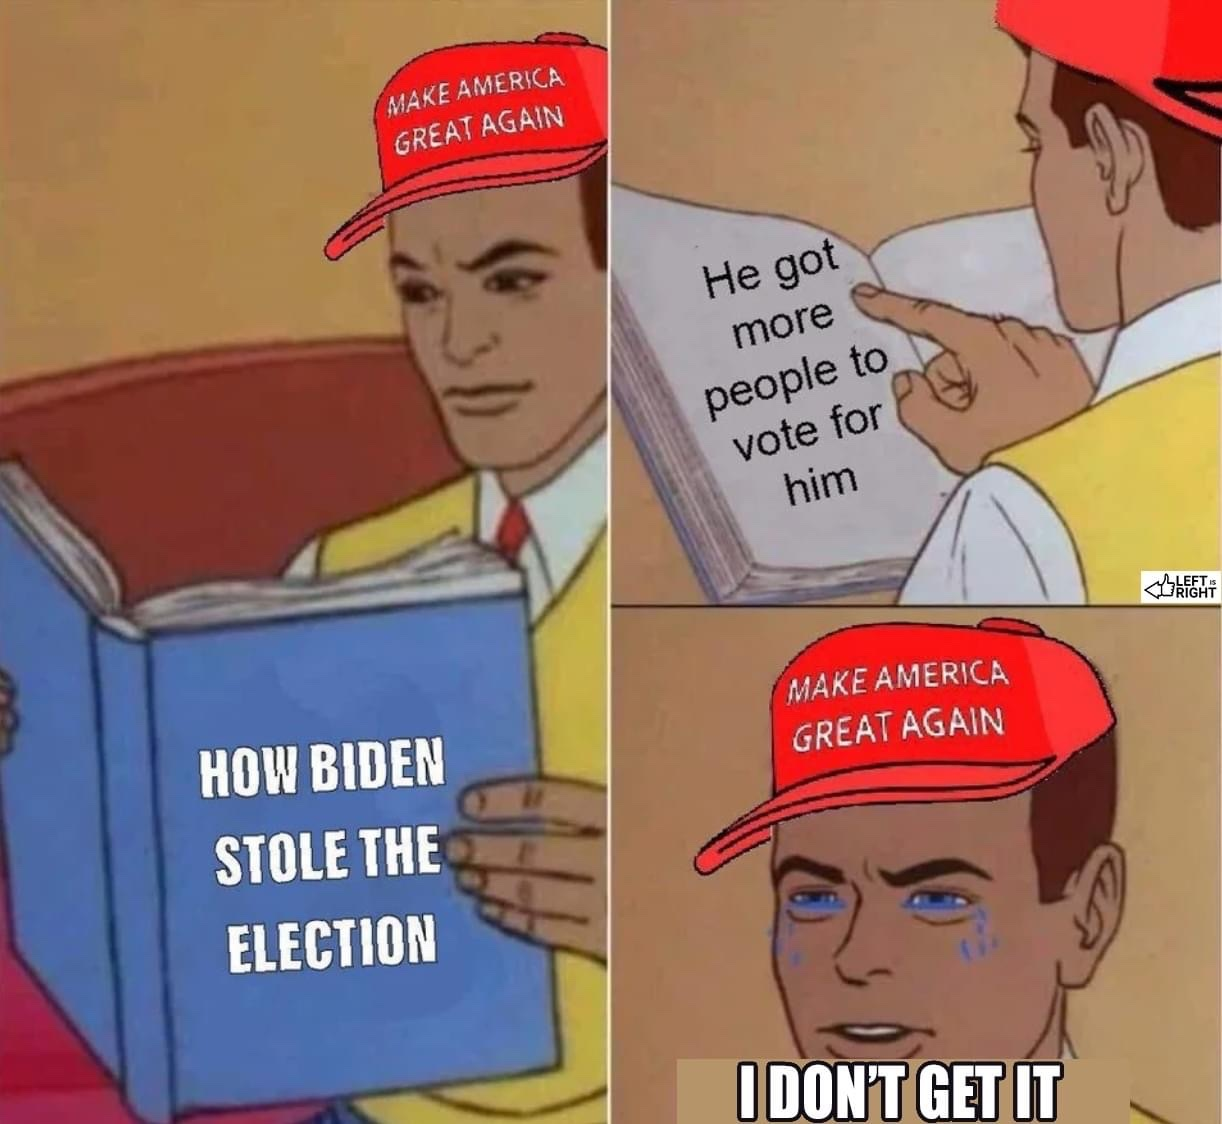 they just don't get it - meme